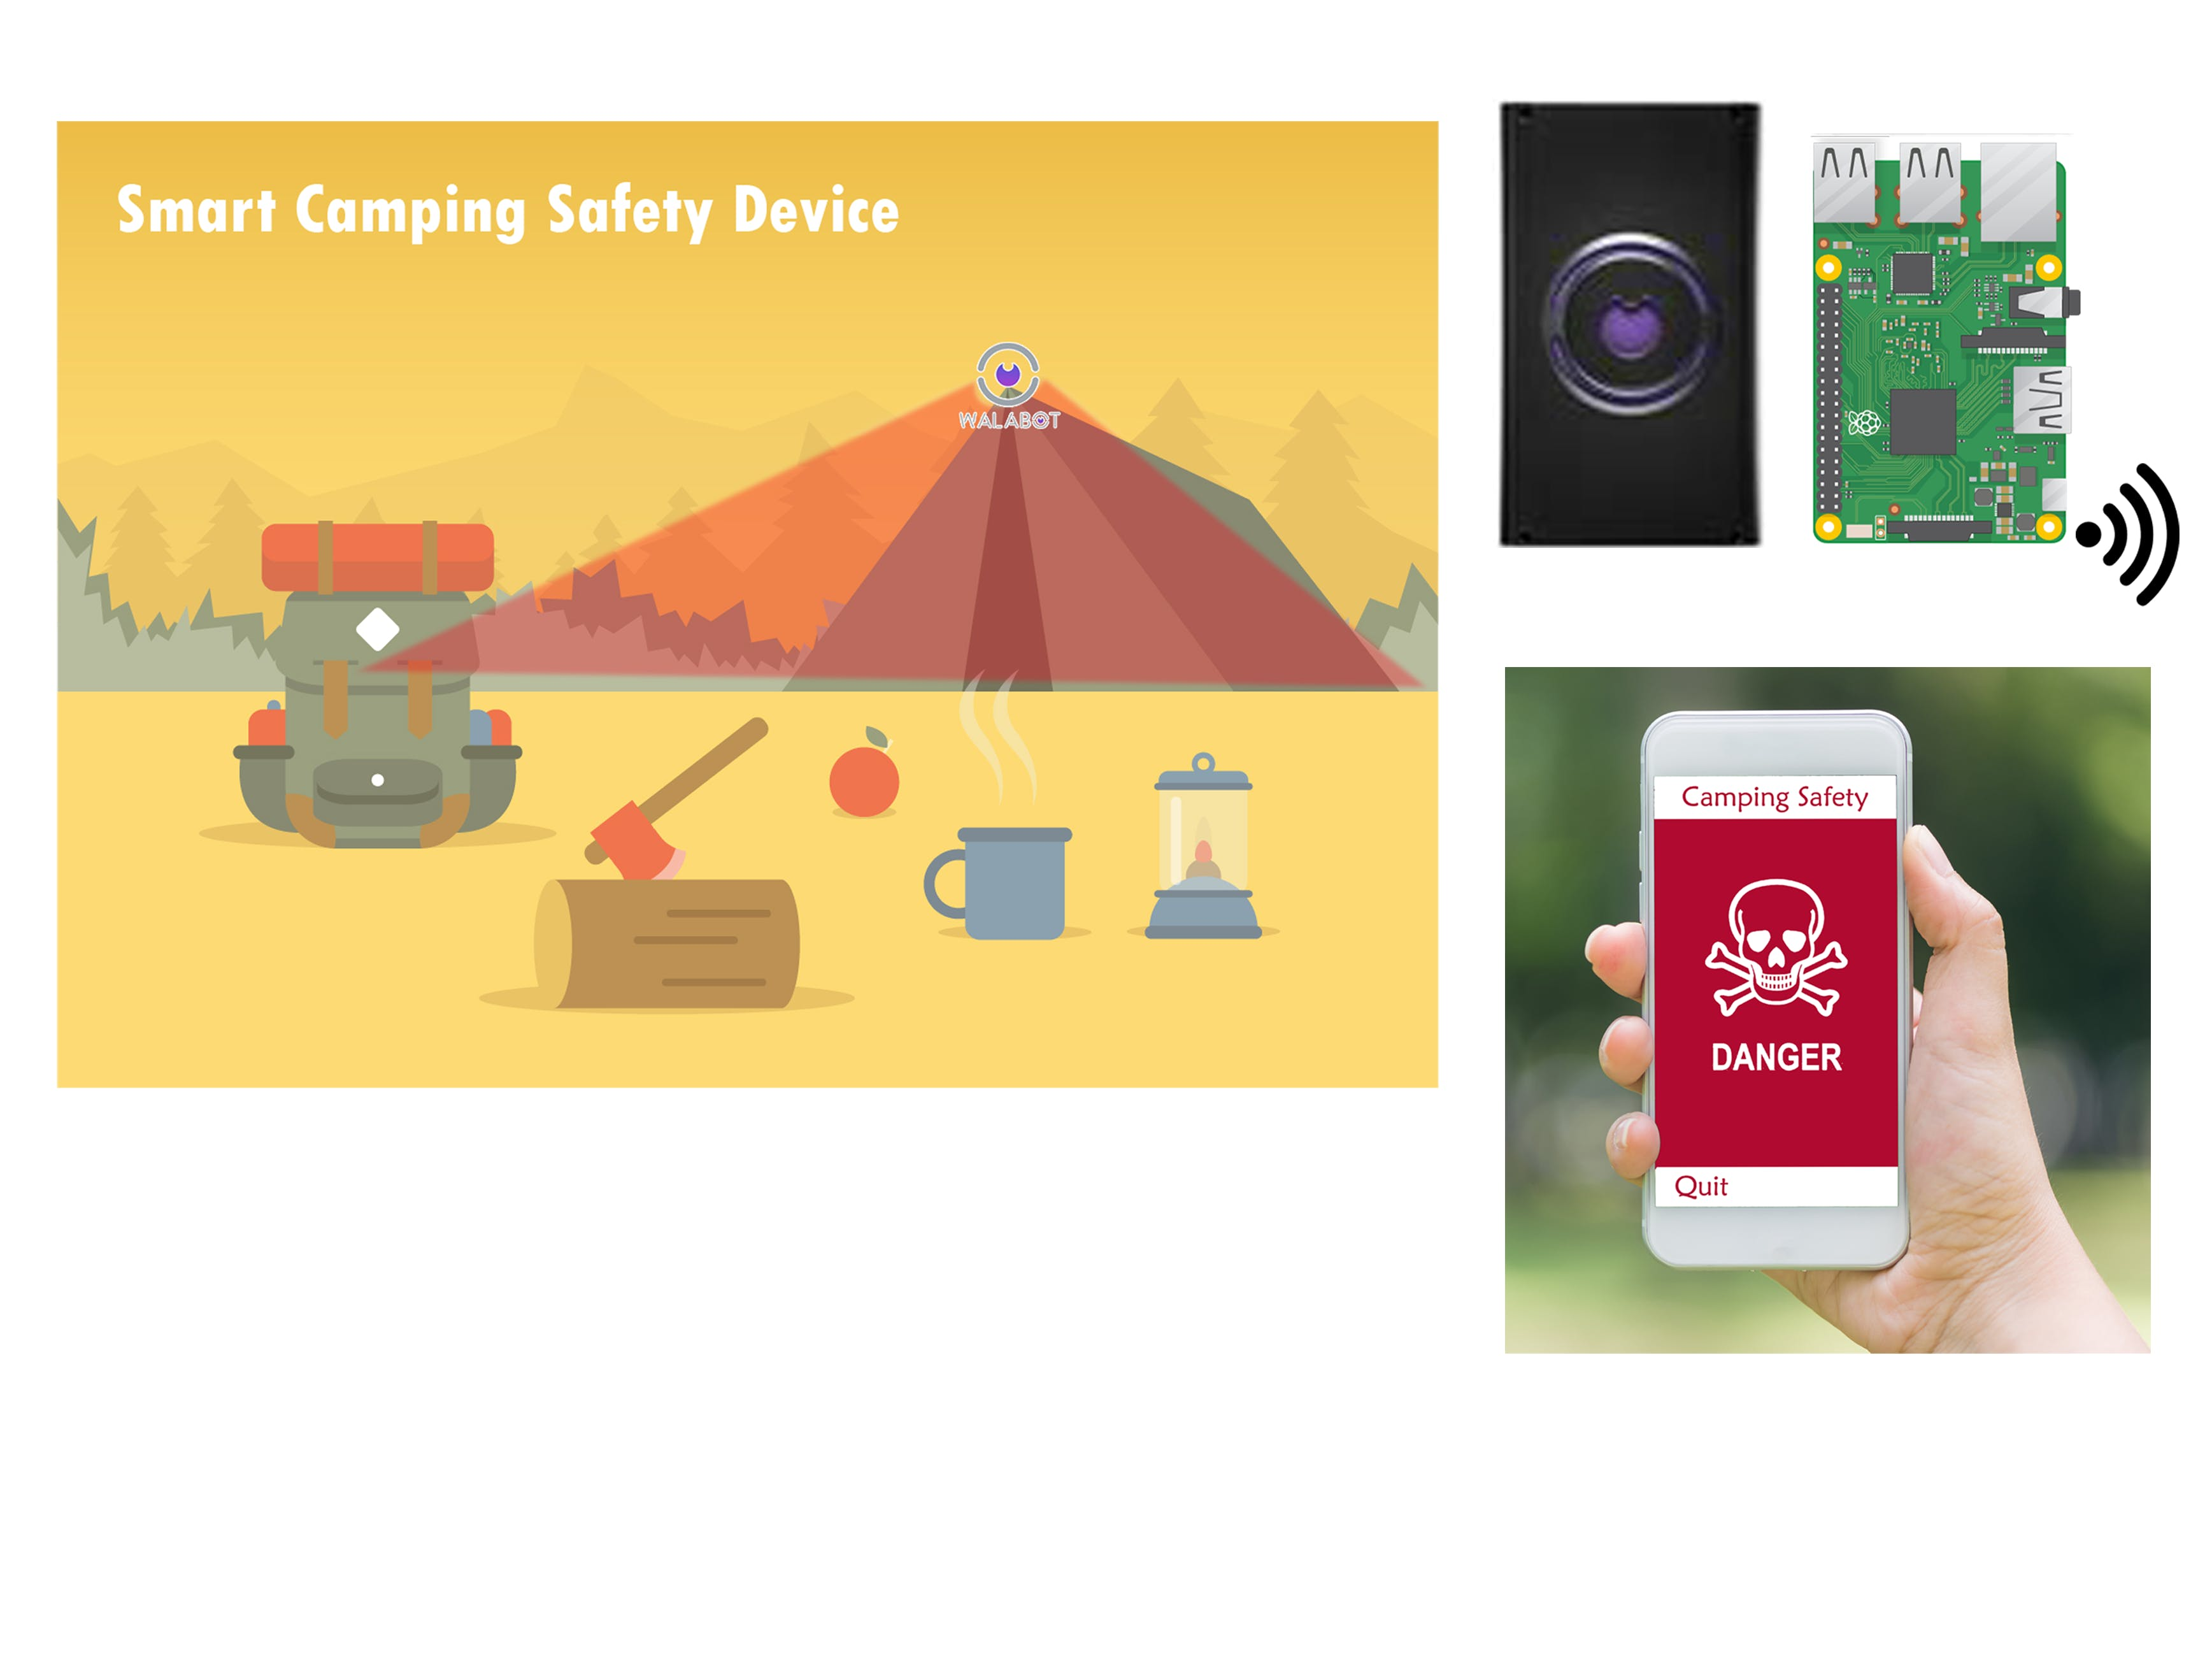 Walabot Powered Smart Camping Safety Device Powered Smart Camping Safety Device Powered Smart Camping Safety Device device and apps vHoiP2XLzj